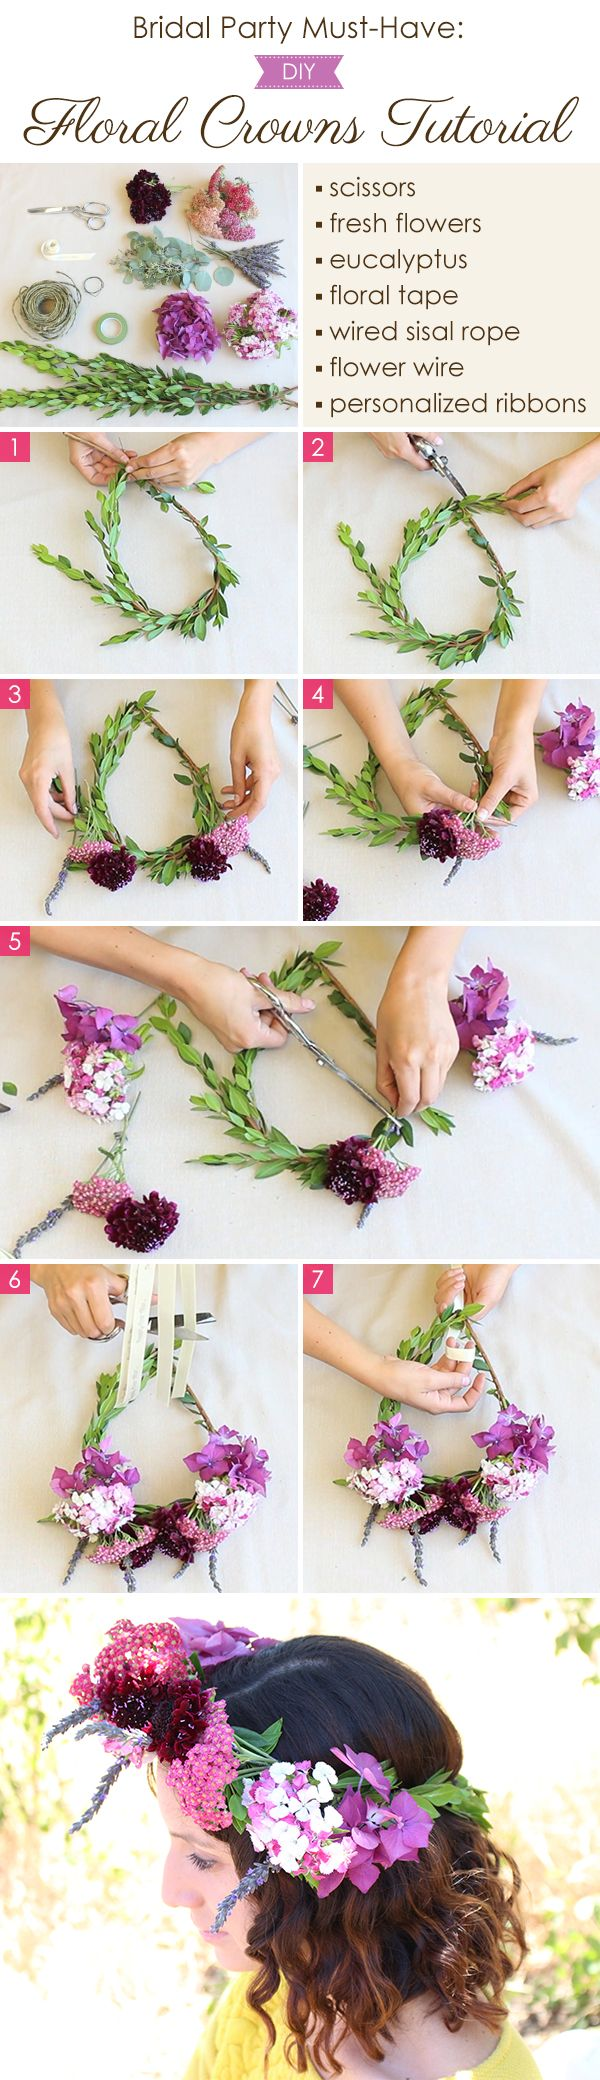 81 best diy flower crown images on pinterest floral crowns bridal party must have diy flower crowns tutorial by home sweet flowers izmirmasajfo Image collections